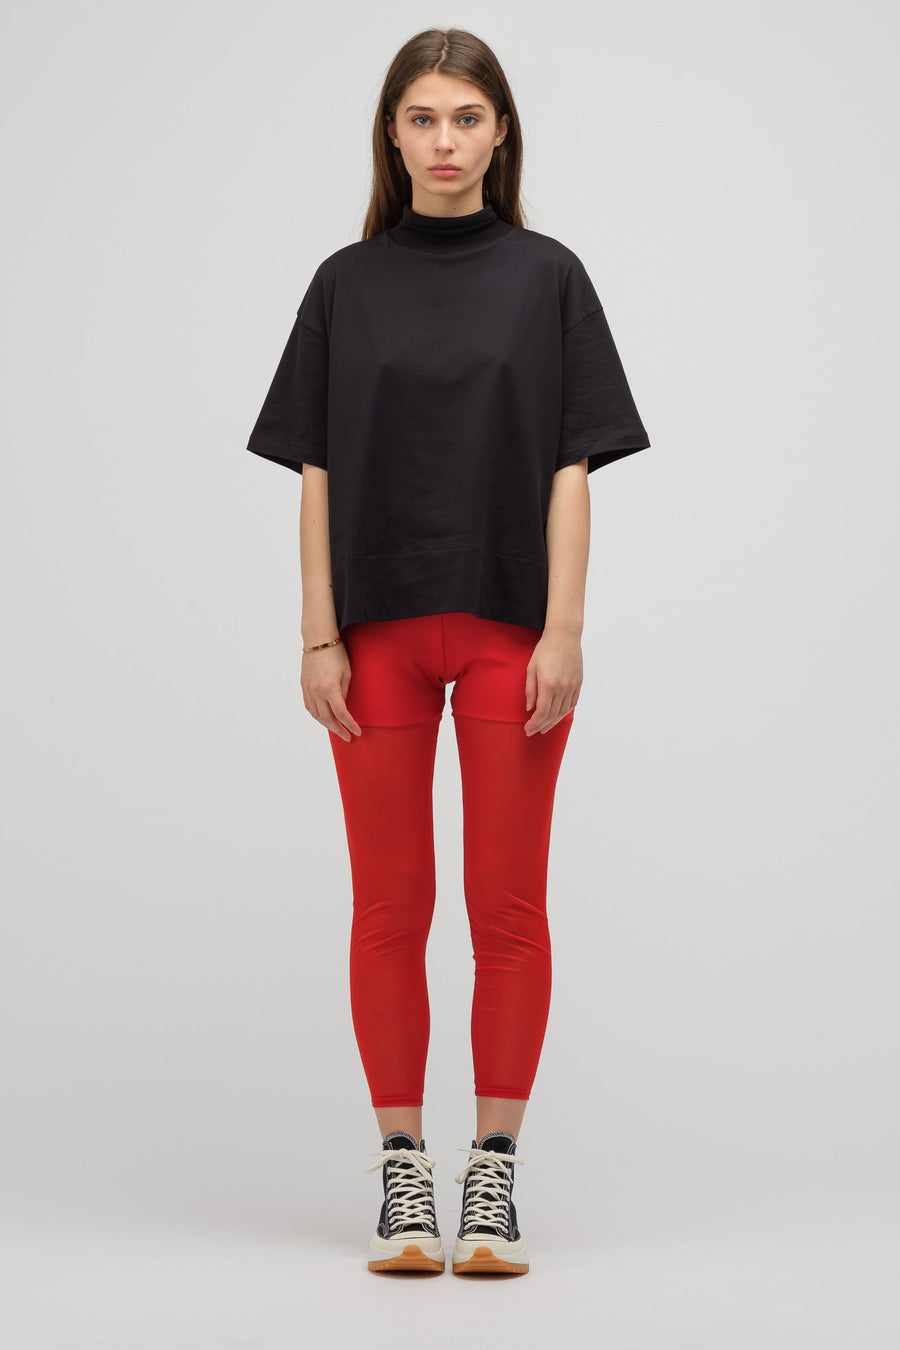 HYKE Knit Leggings in Red - Notre